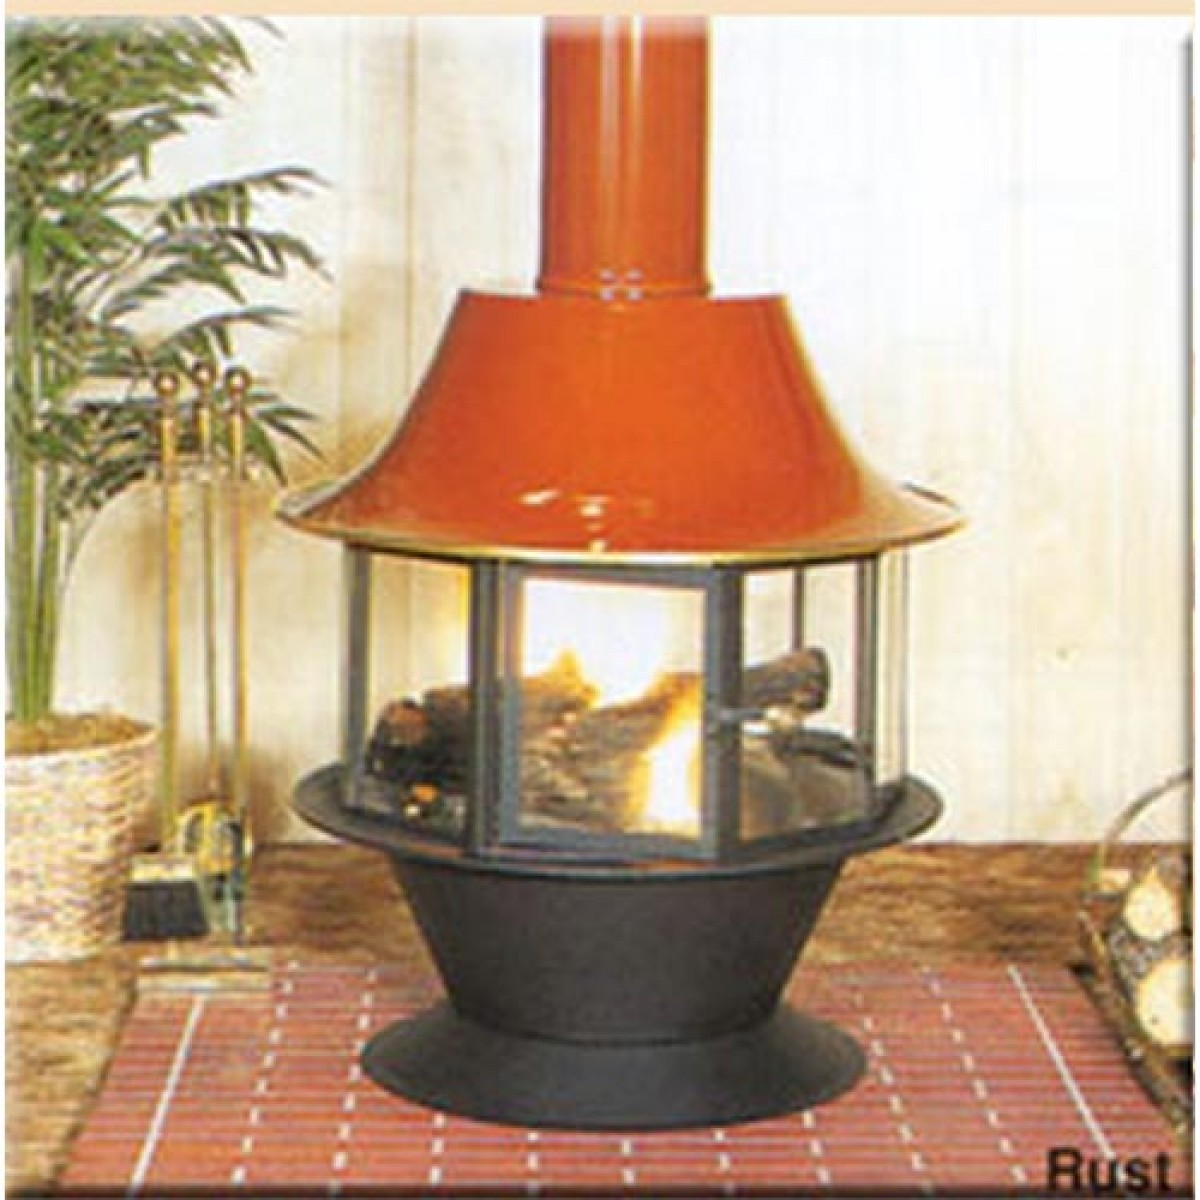 Design Malm Fireplaces spin a fire wood burning or gas matte black porcelain colors malm fireplace